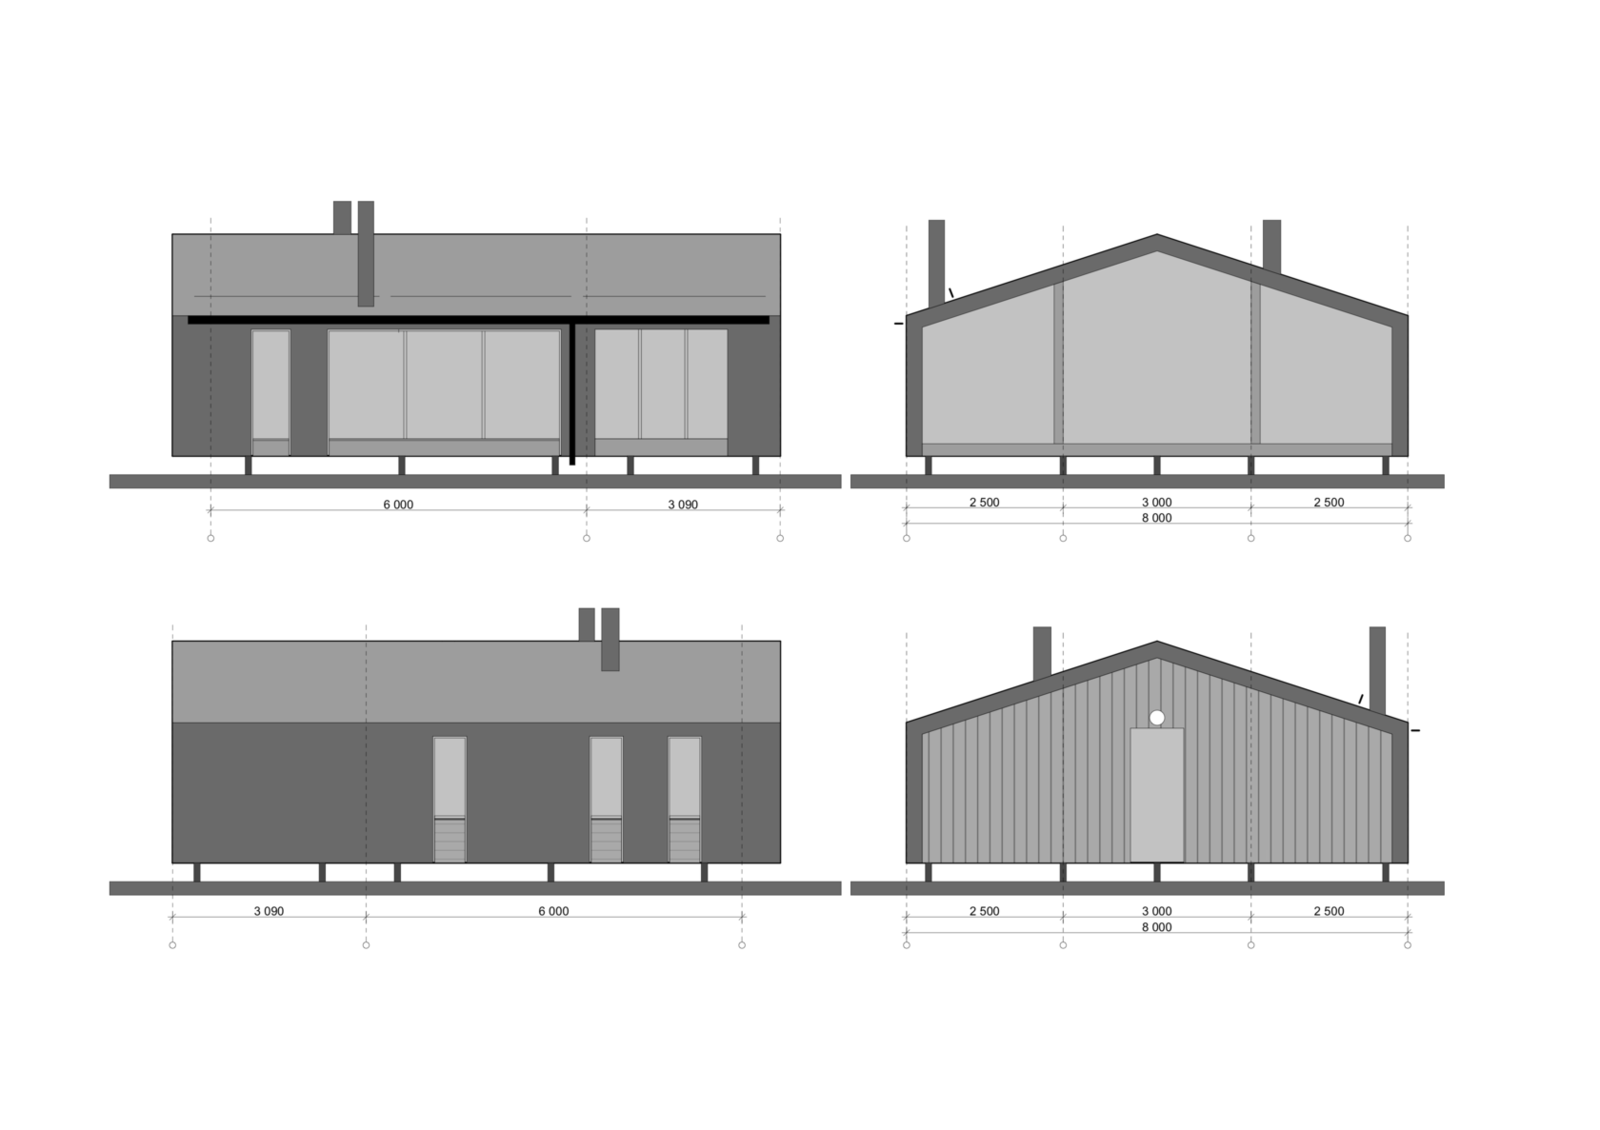 DD 43 facade drawing  Photo 13 of 22 in DublDom Prefab Homes Can Be Built in One Day